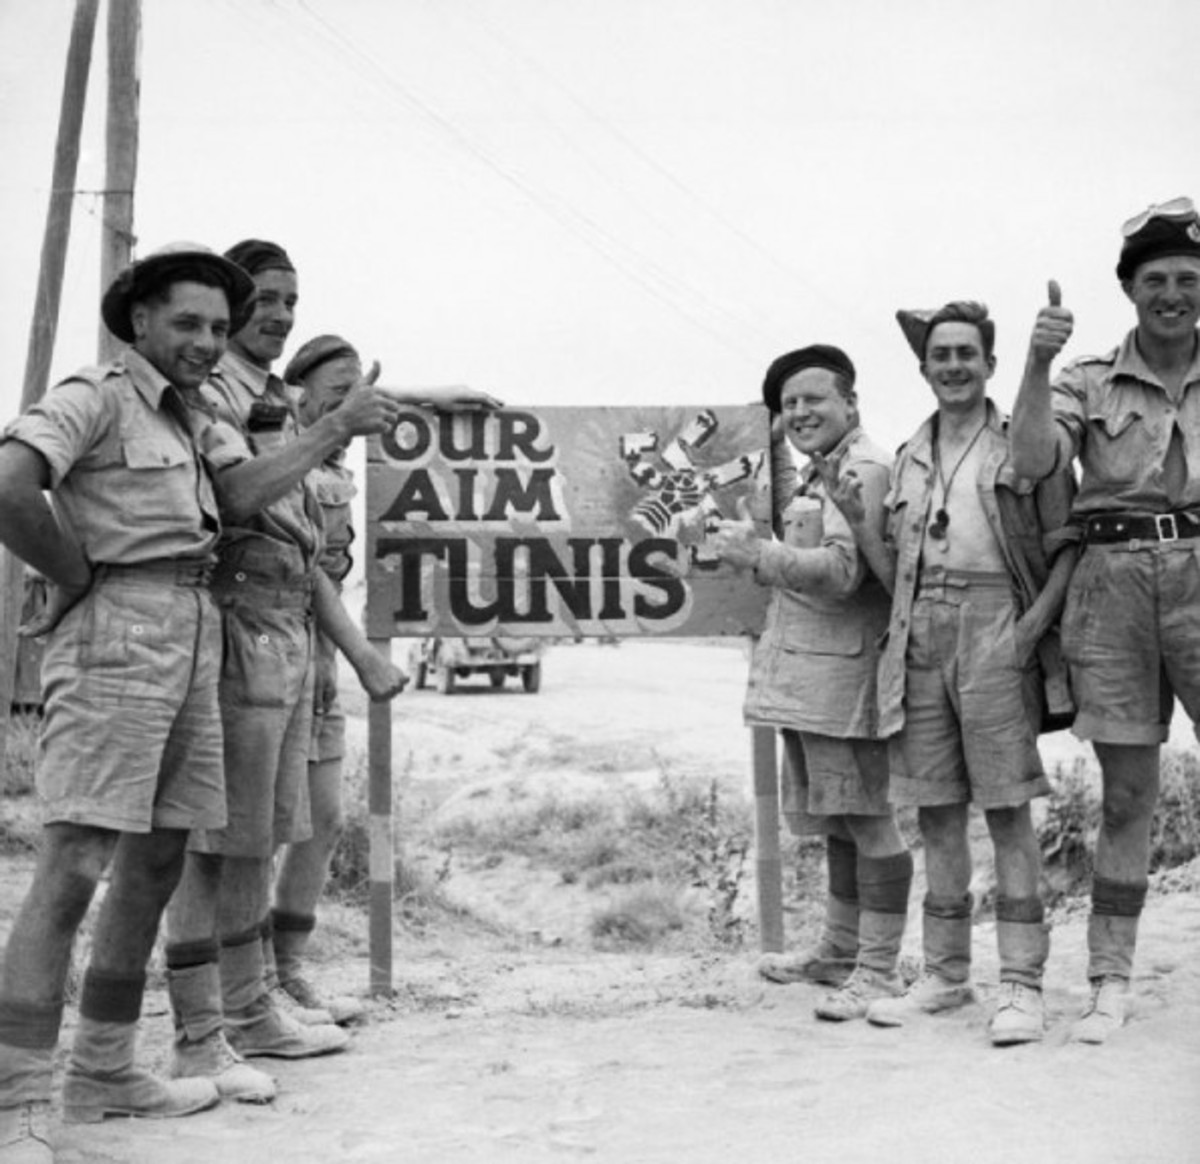 The Africa Korps meets it End in Tunisia